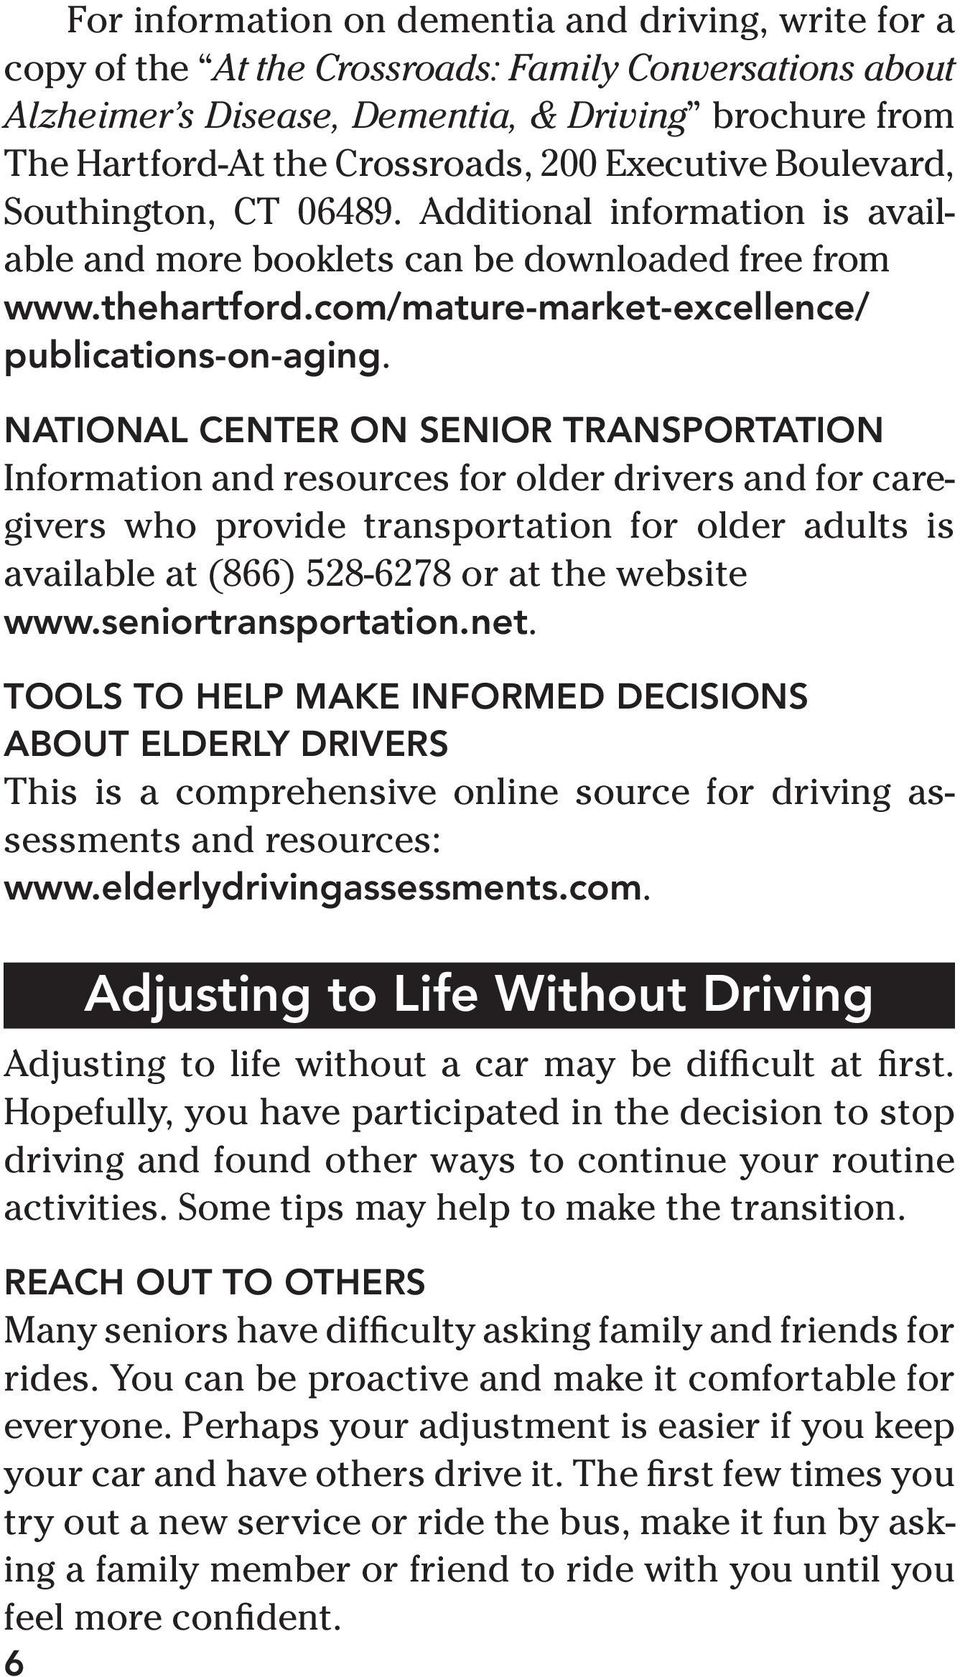 National Center on Senior Transportation Information and resources for older drivers and for caregivers who provide transportation for older adults is available at (866) 528-6278 or at the website